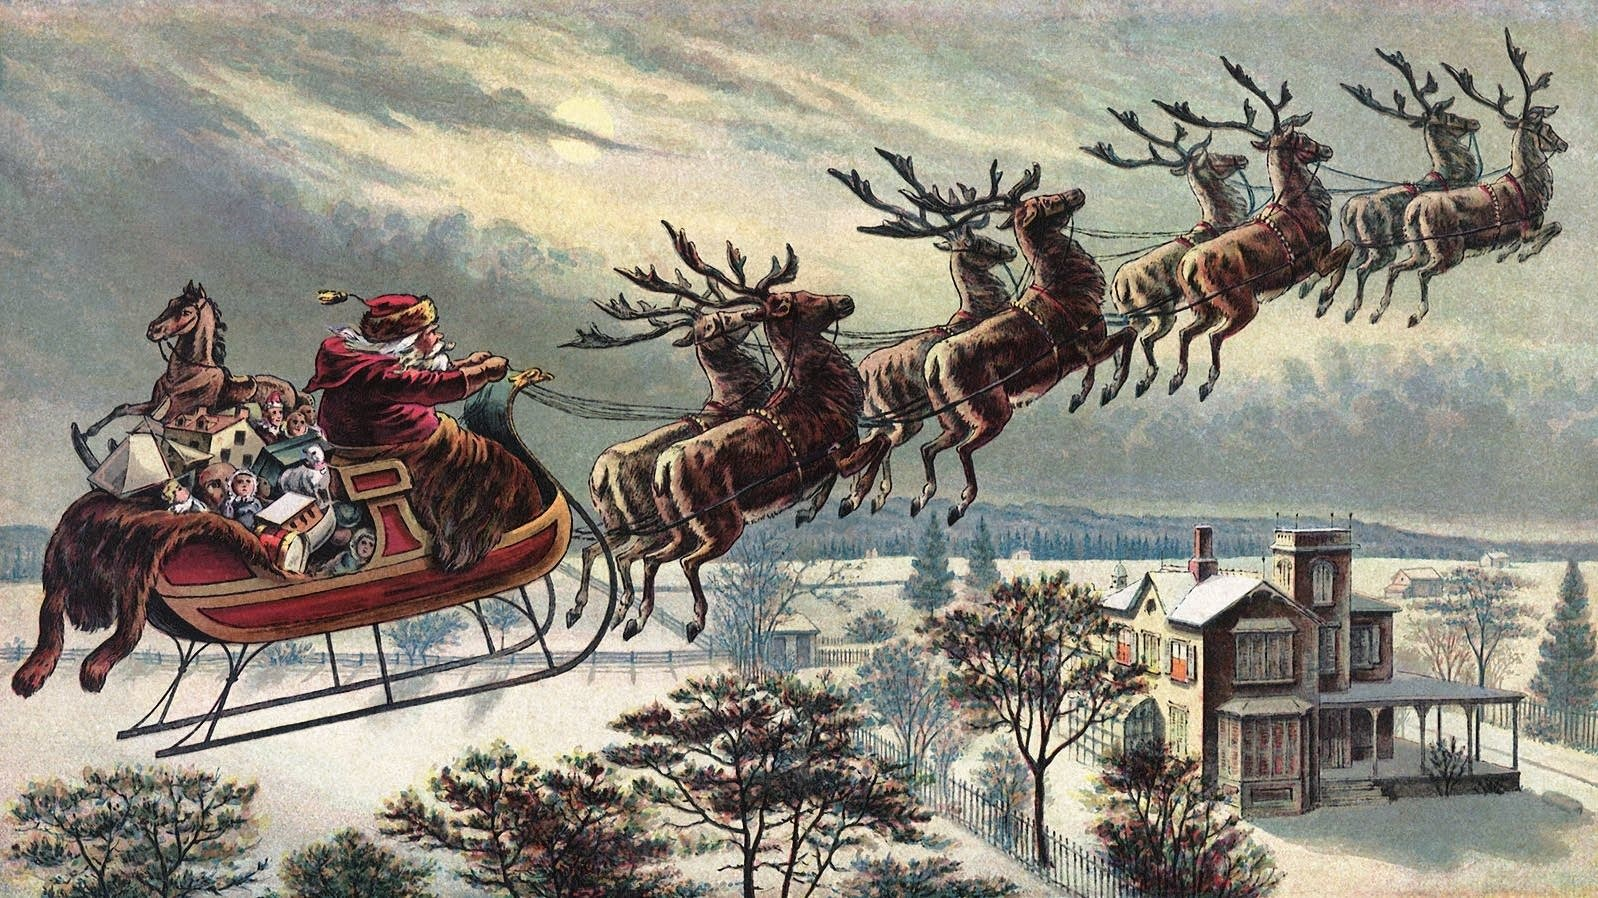 A vintage illustration of Santa Claus.